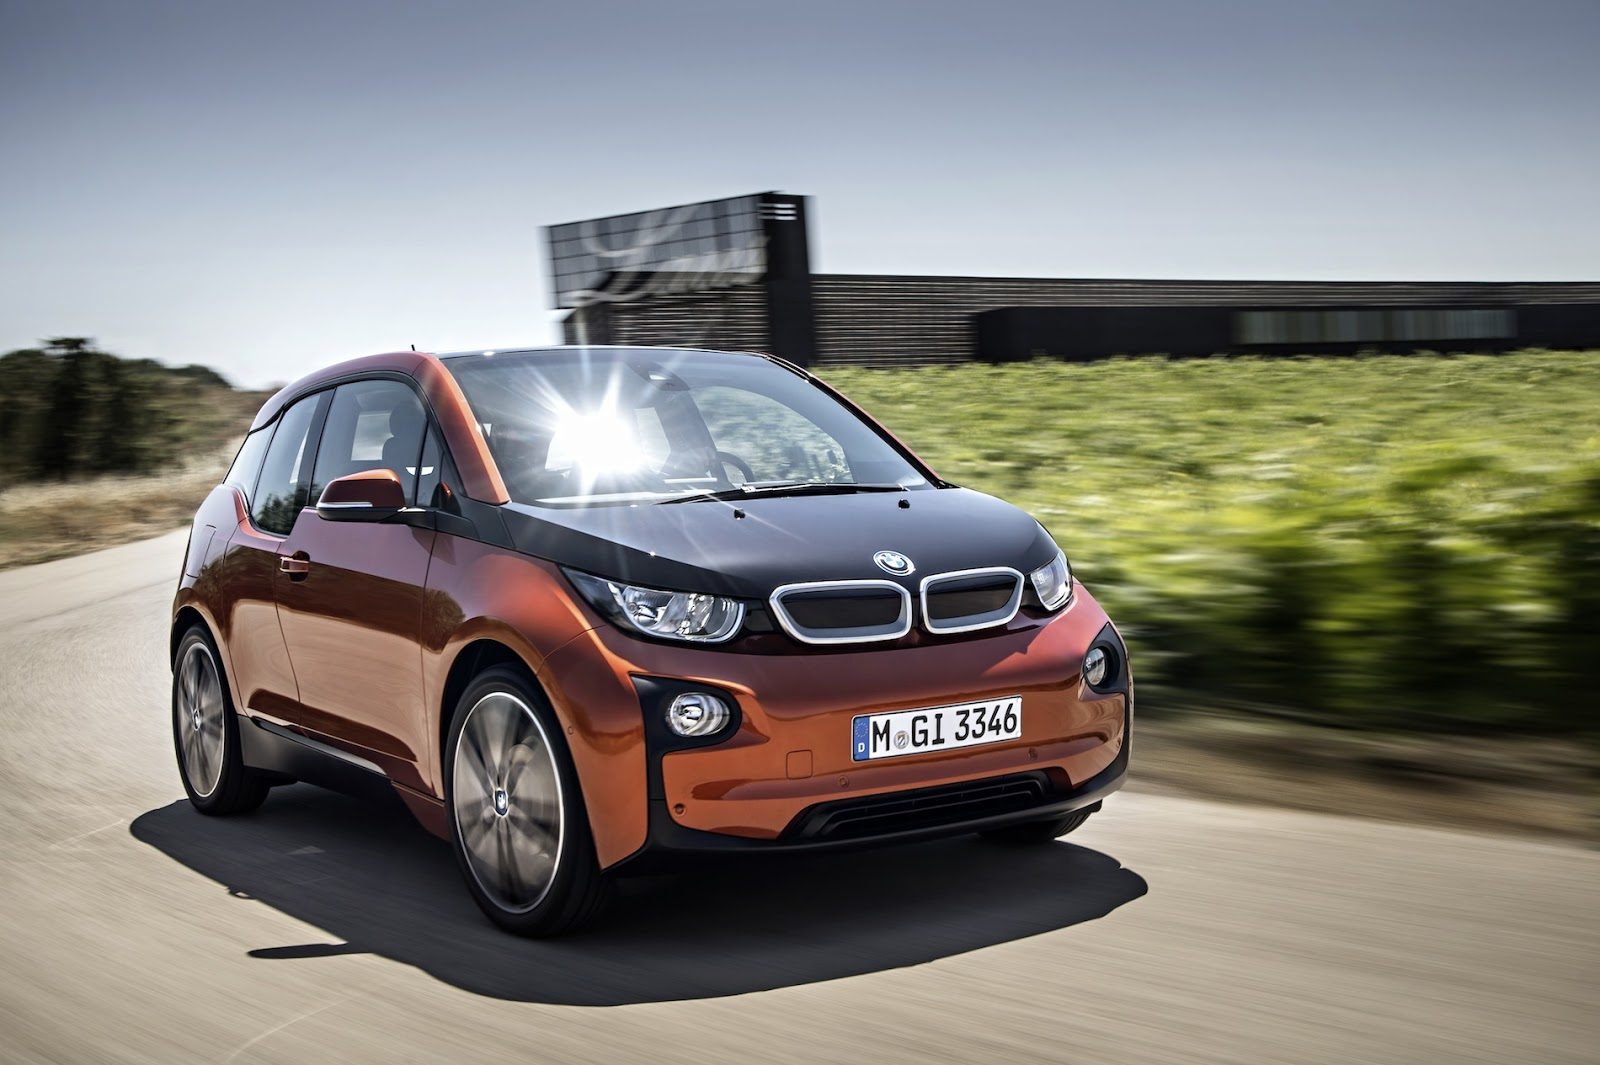 The All-New BMW i3 (Media Gallery) - BMW Markham